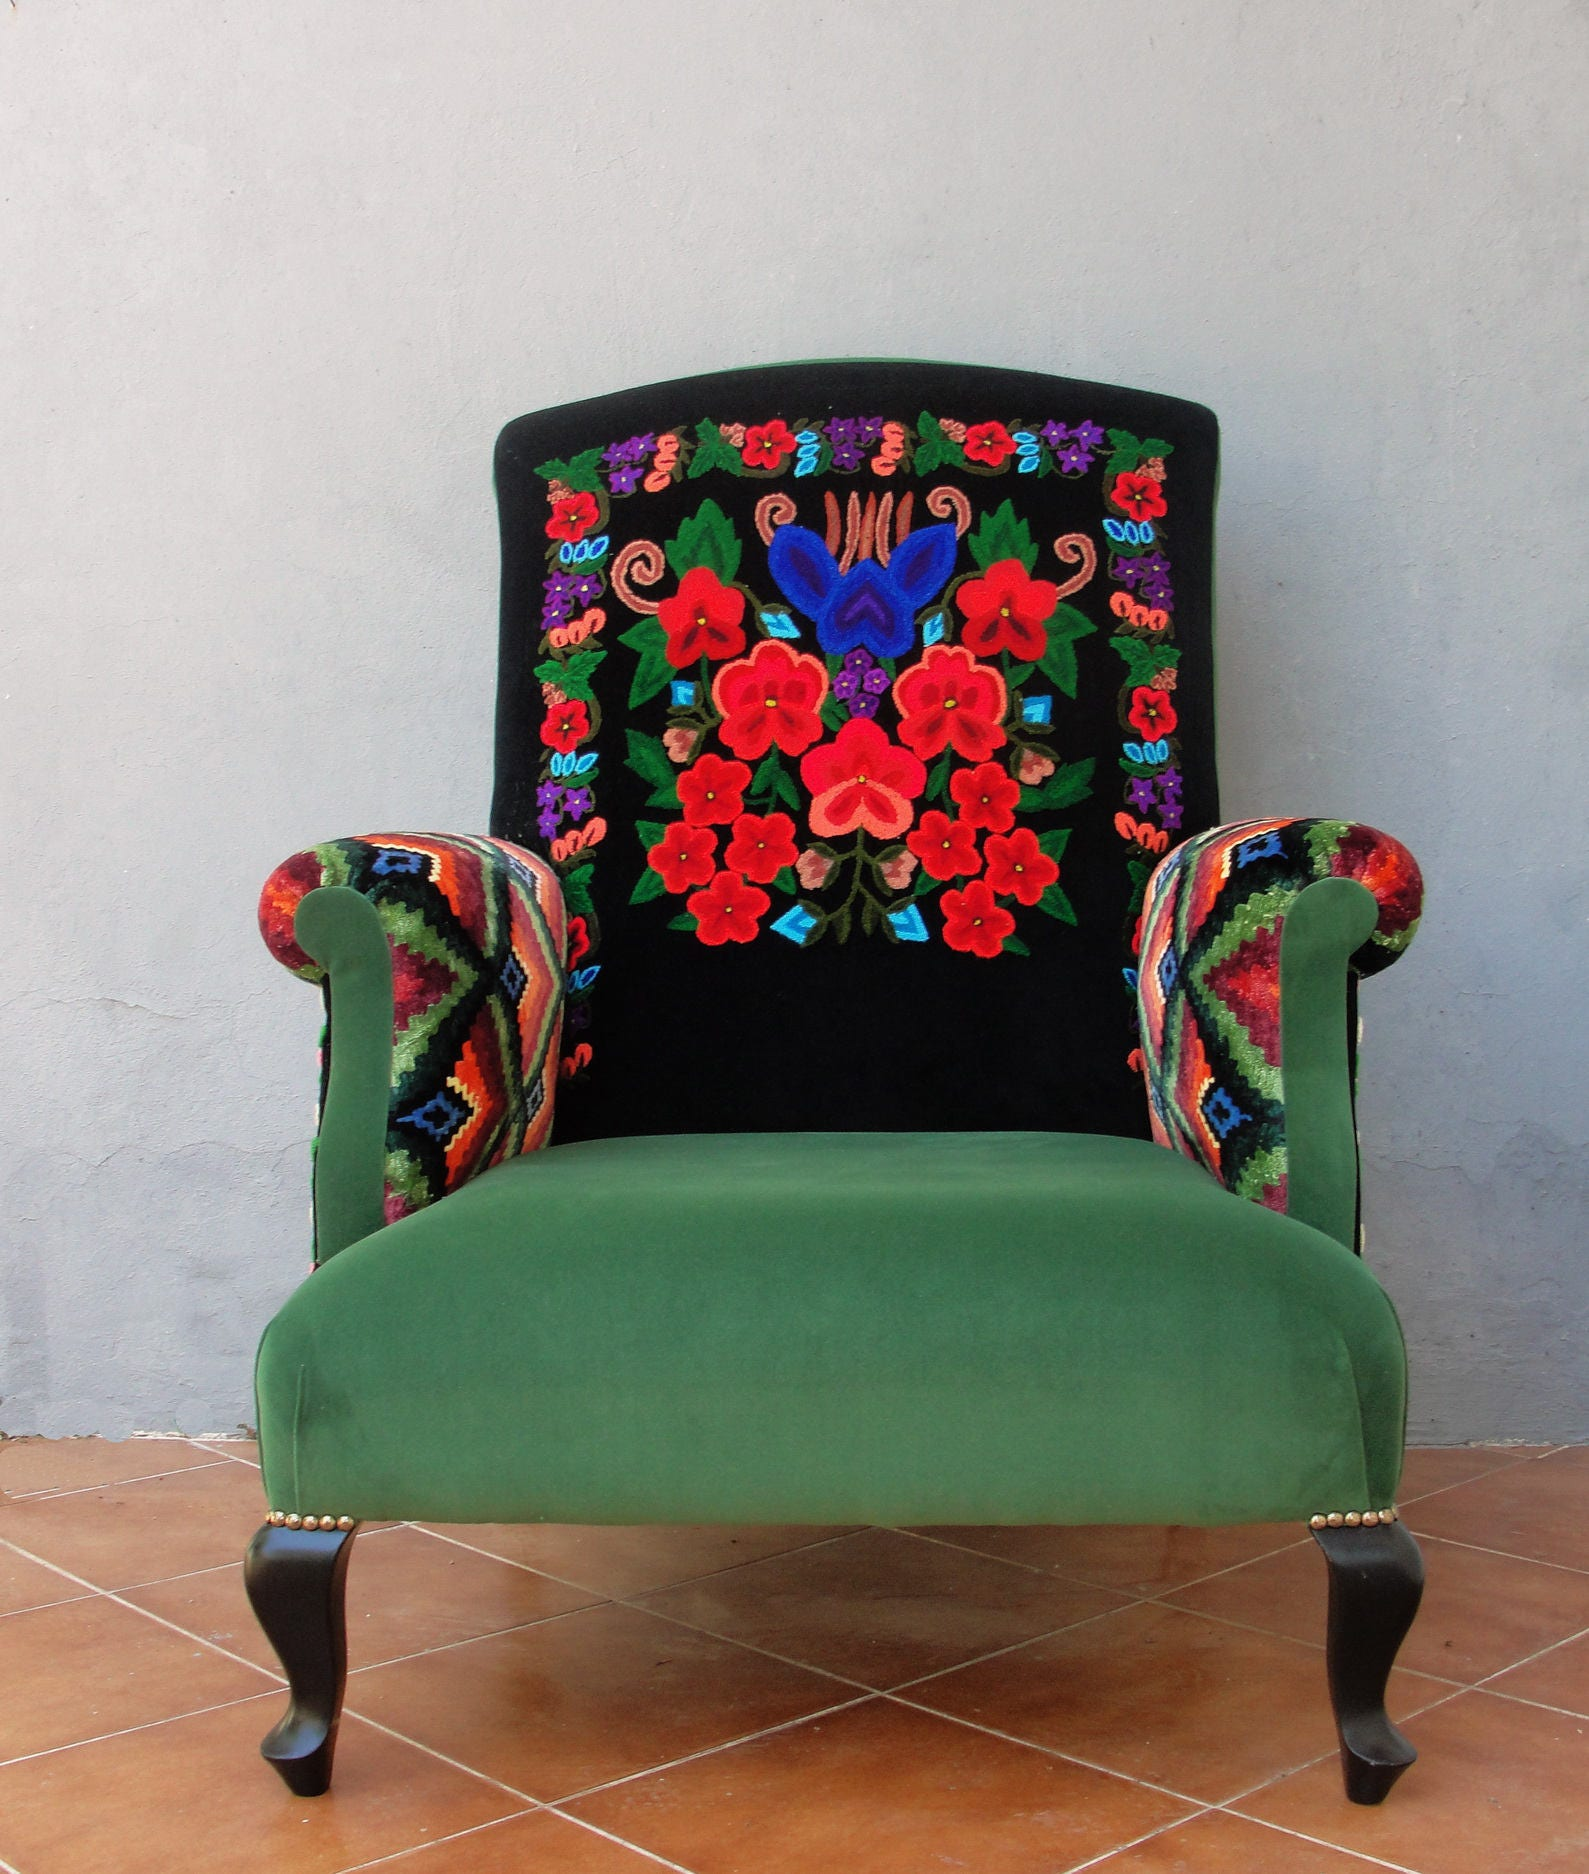 Bohemian Furniture: Embroidered Armchair Colorful Bohemian Embroidery